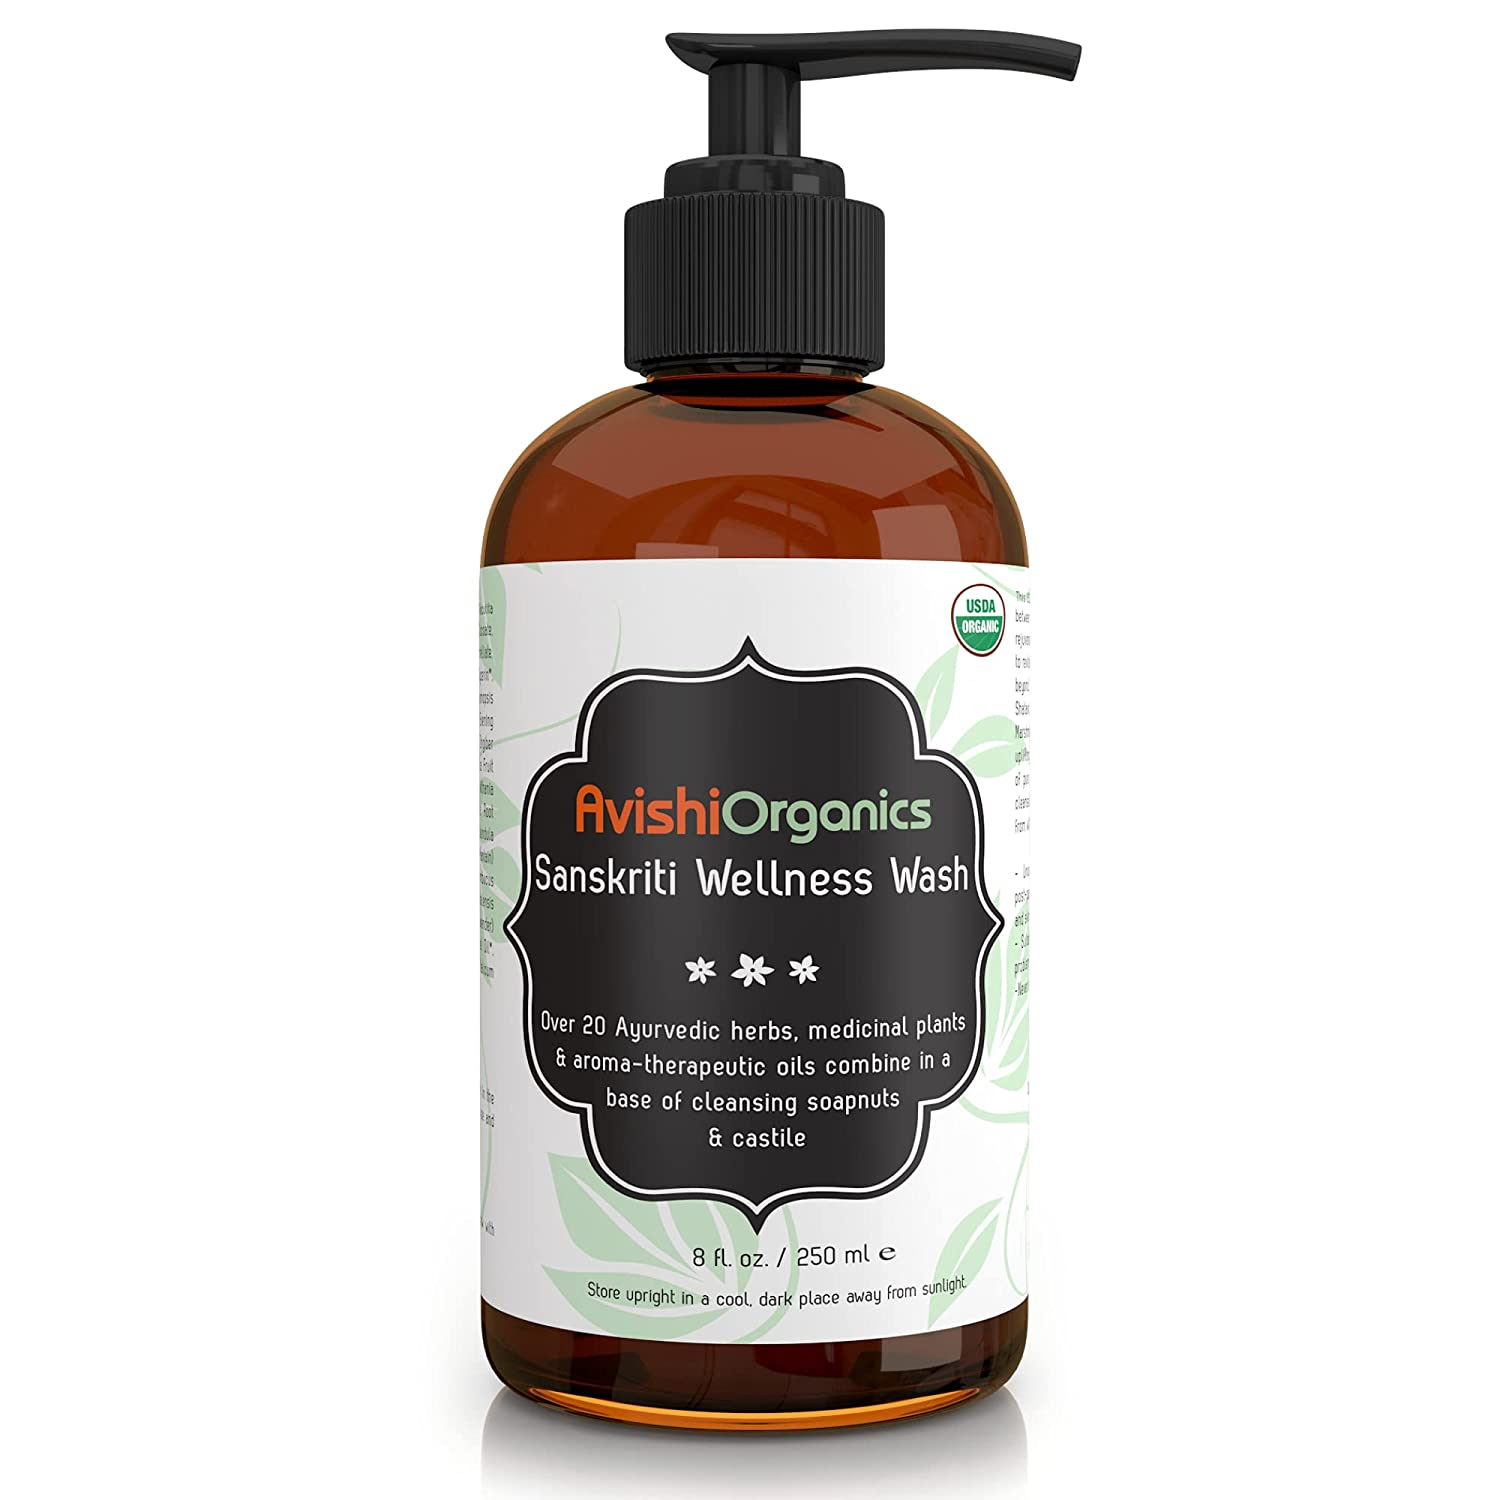 Organic Luxury Wellness Body Wash - Infused with 20+ Deeply Nourishing Herbs to Soften, Smoothen, Tone & Hydrate | Nourish & Heal your skin while you bathe |